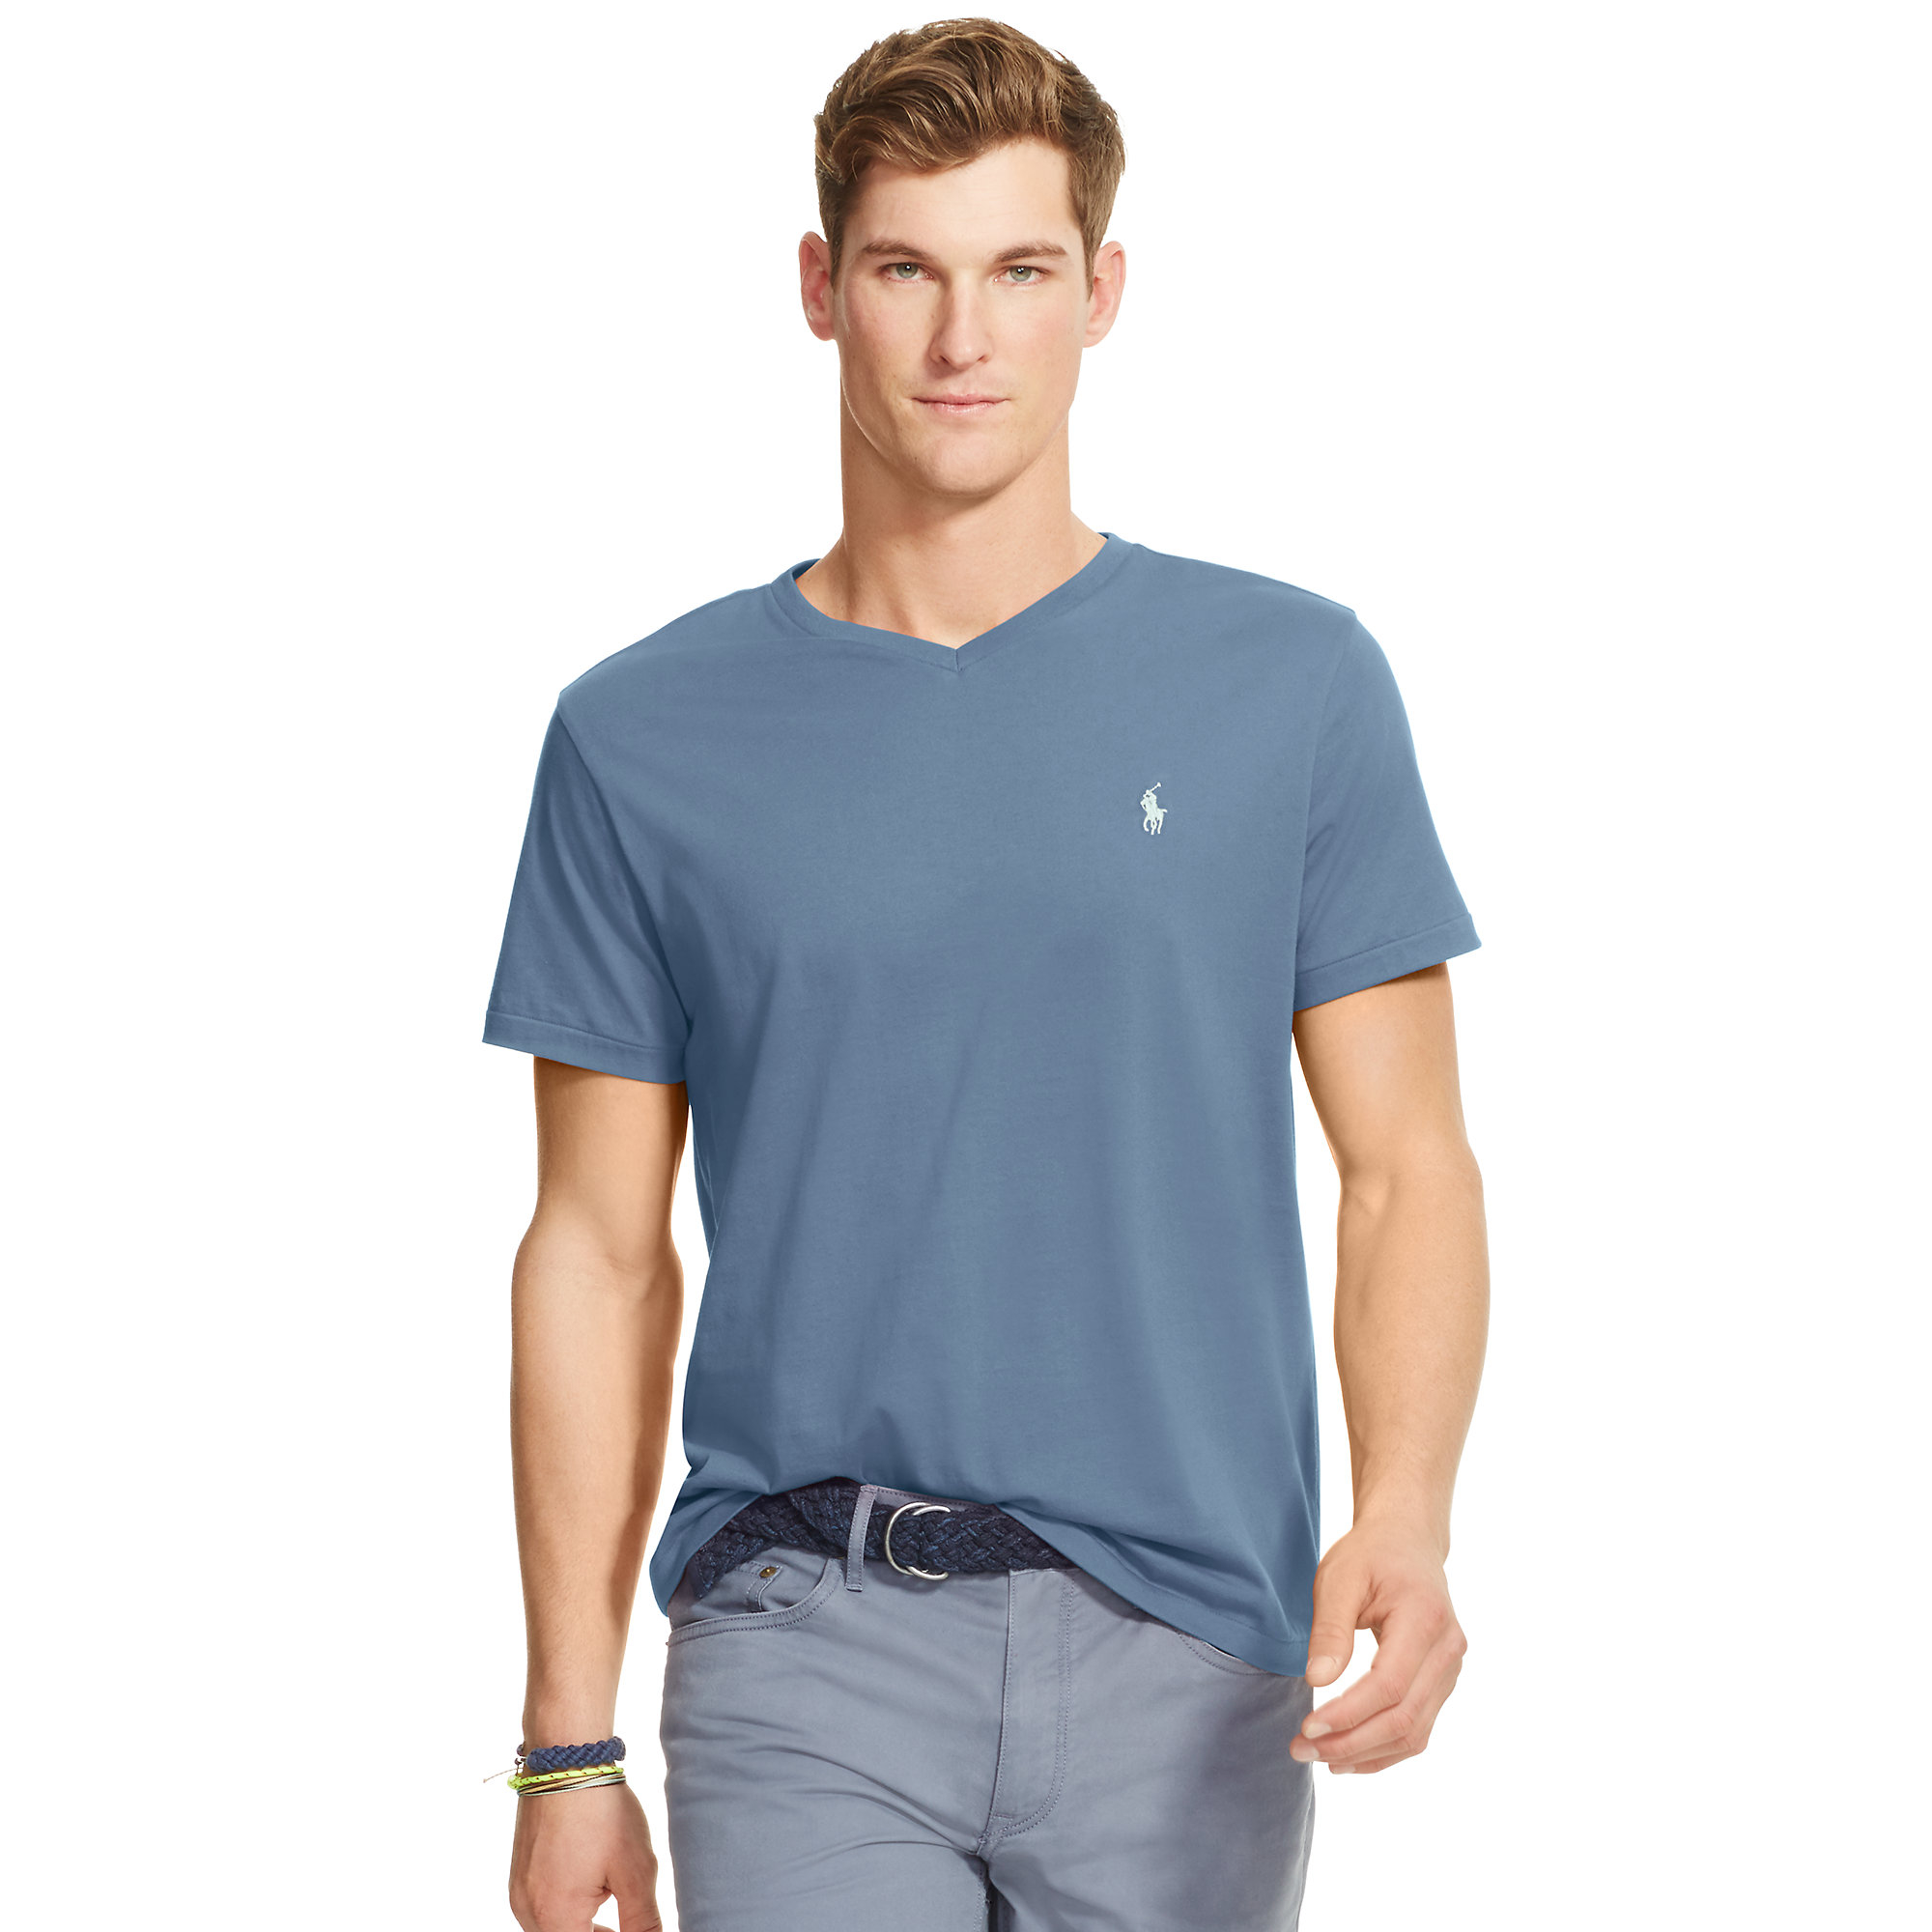 polo ralph lauren cotton jersey v neck t shirt in blue for. Black Bedroom Furniture Sets. Home Design Ideas